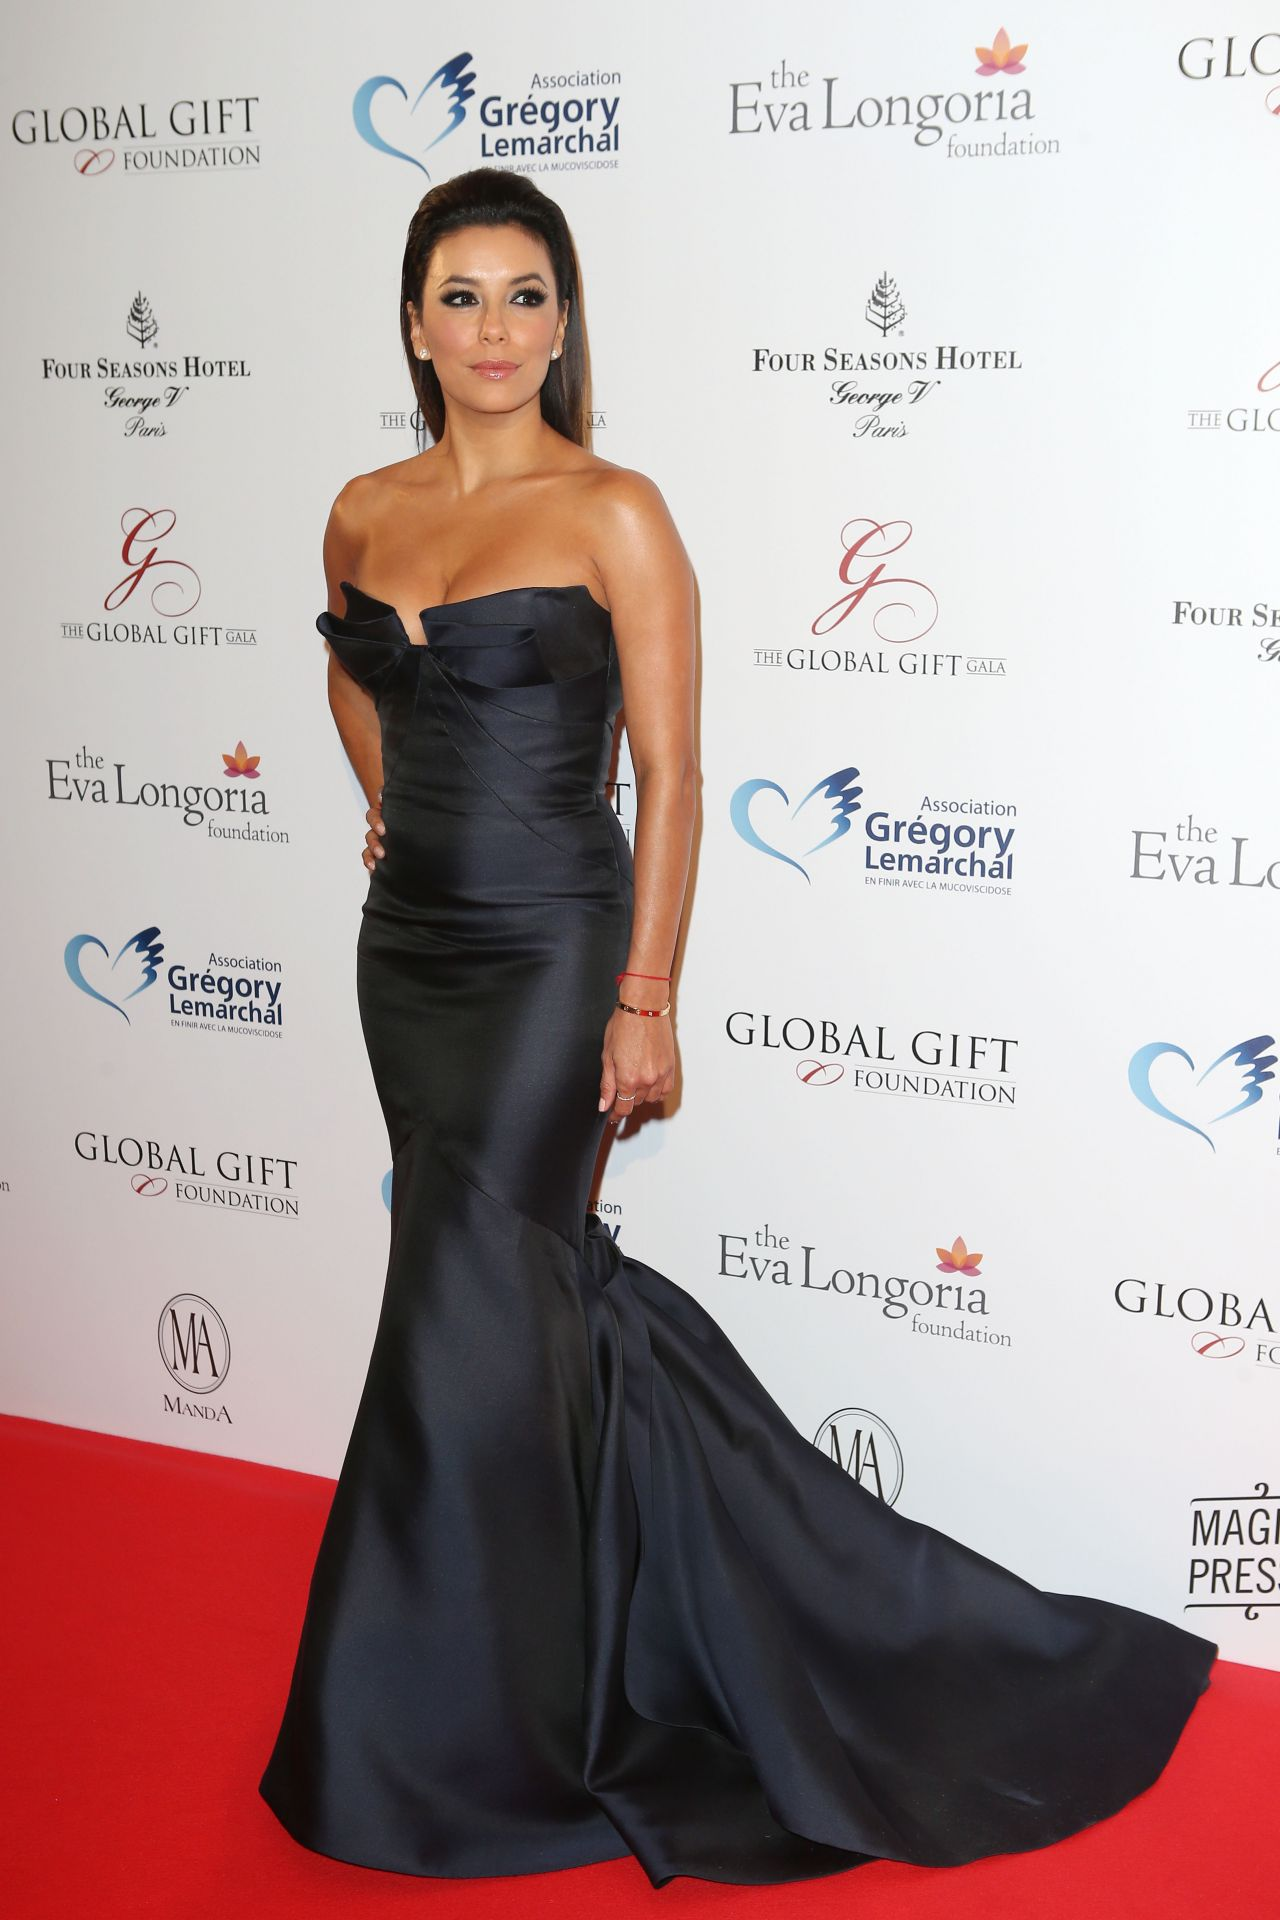 Eva Longoria in Monique Lhuillier Gown in Paris - 2014 Global Gift Gala